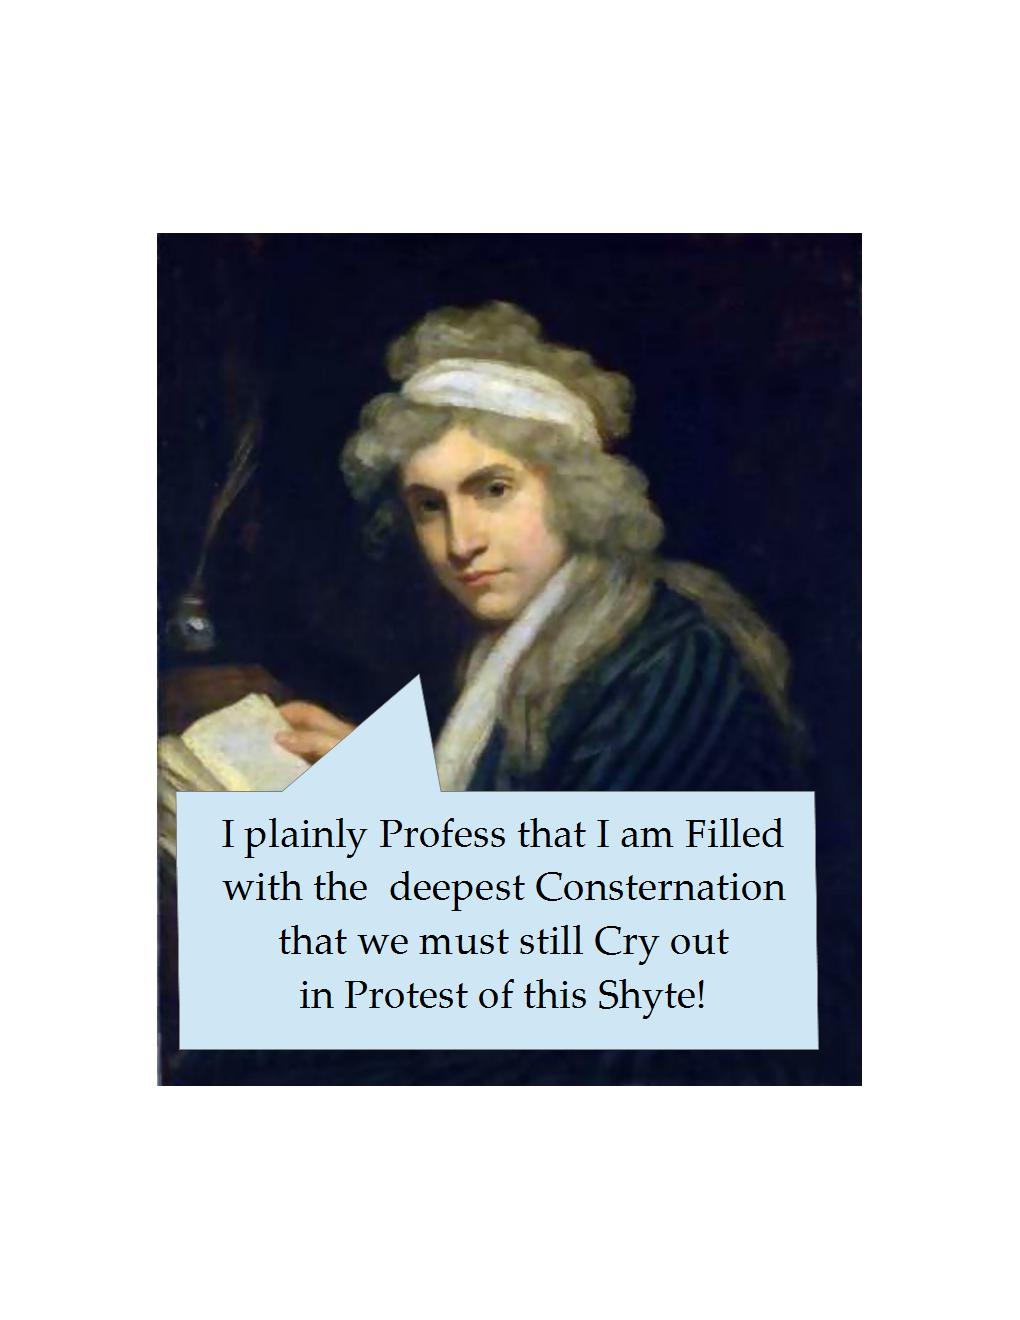 Mary Wollstonecraft's quote